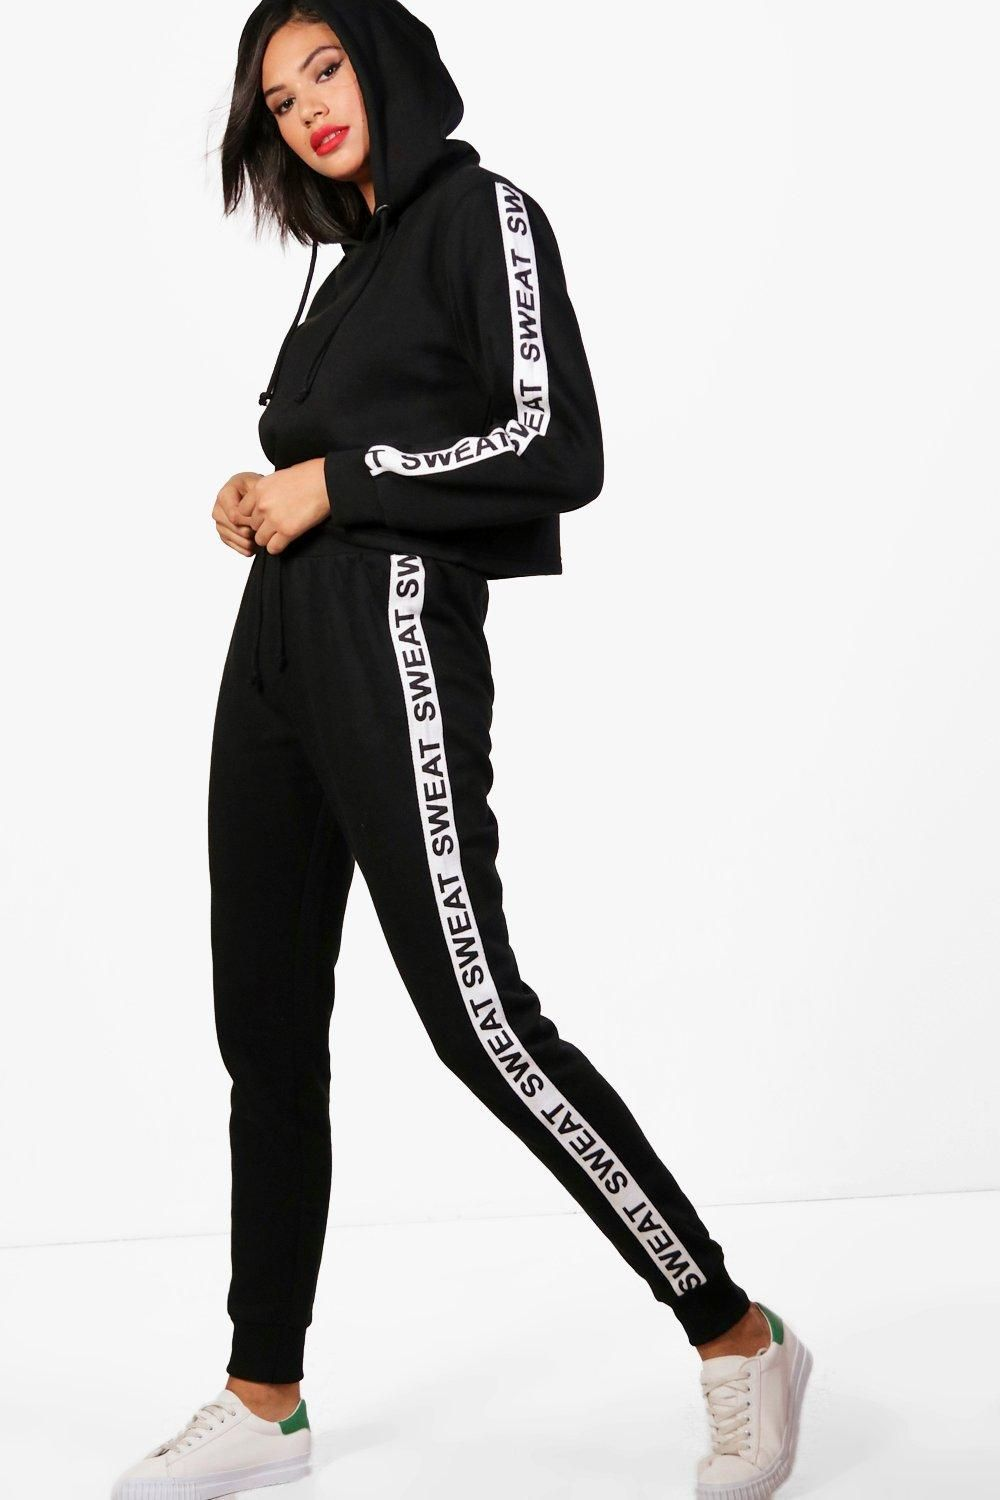 5b828794d877 Click here to find out about the Ella Athleisure Sweat Slogan Tracksuit  from Boohoo, part of our latest Tracksuits & Sweats collection ready to  shop online ...